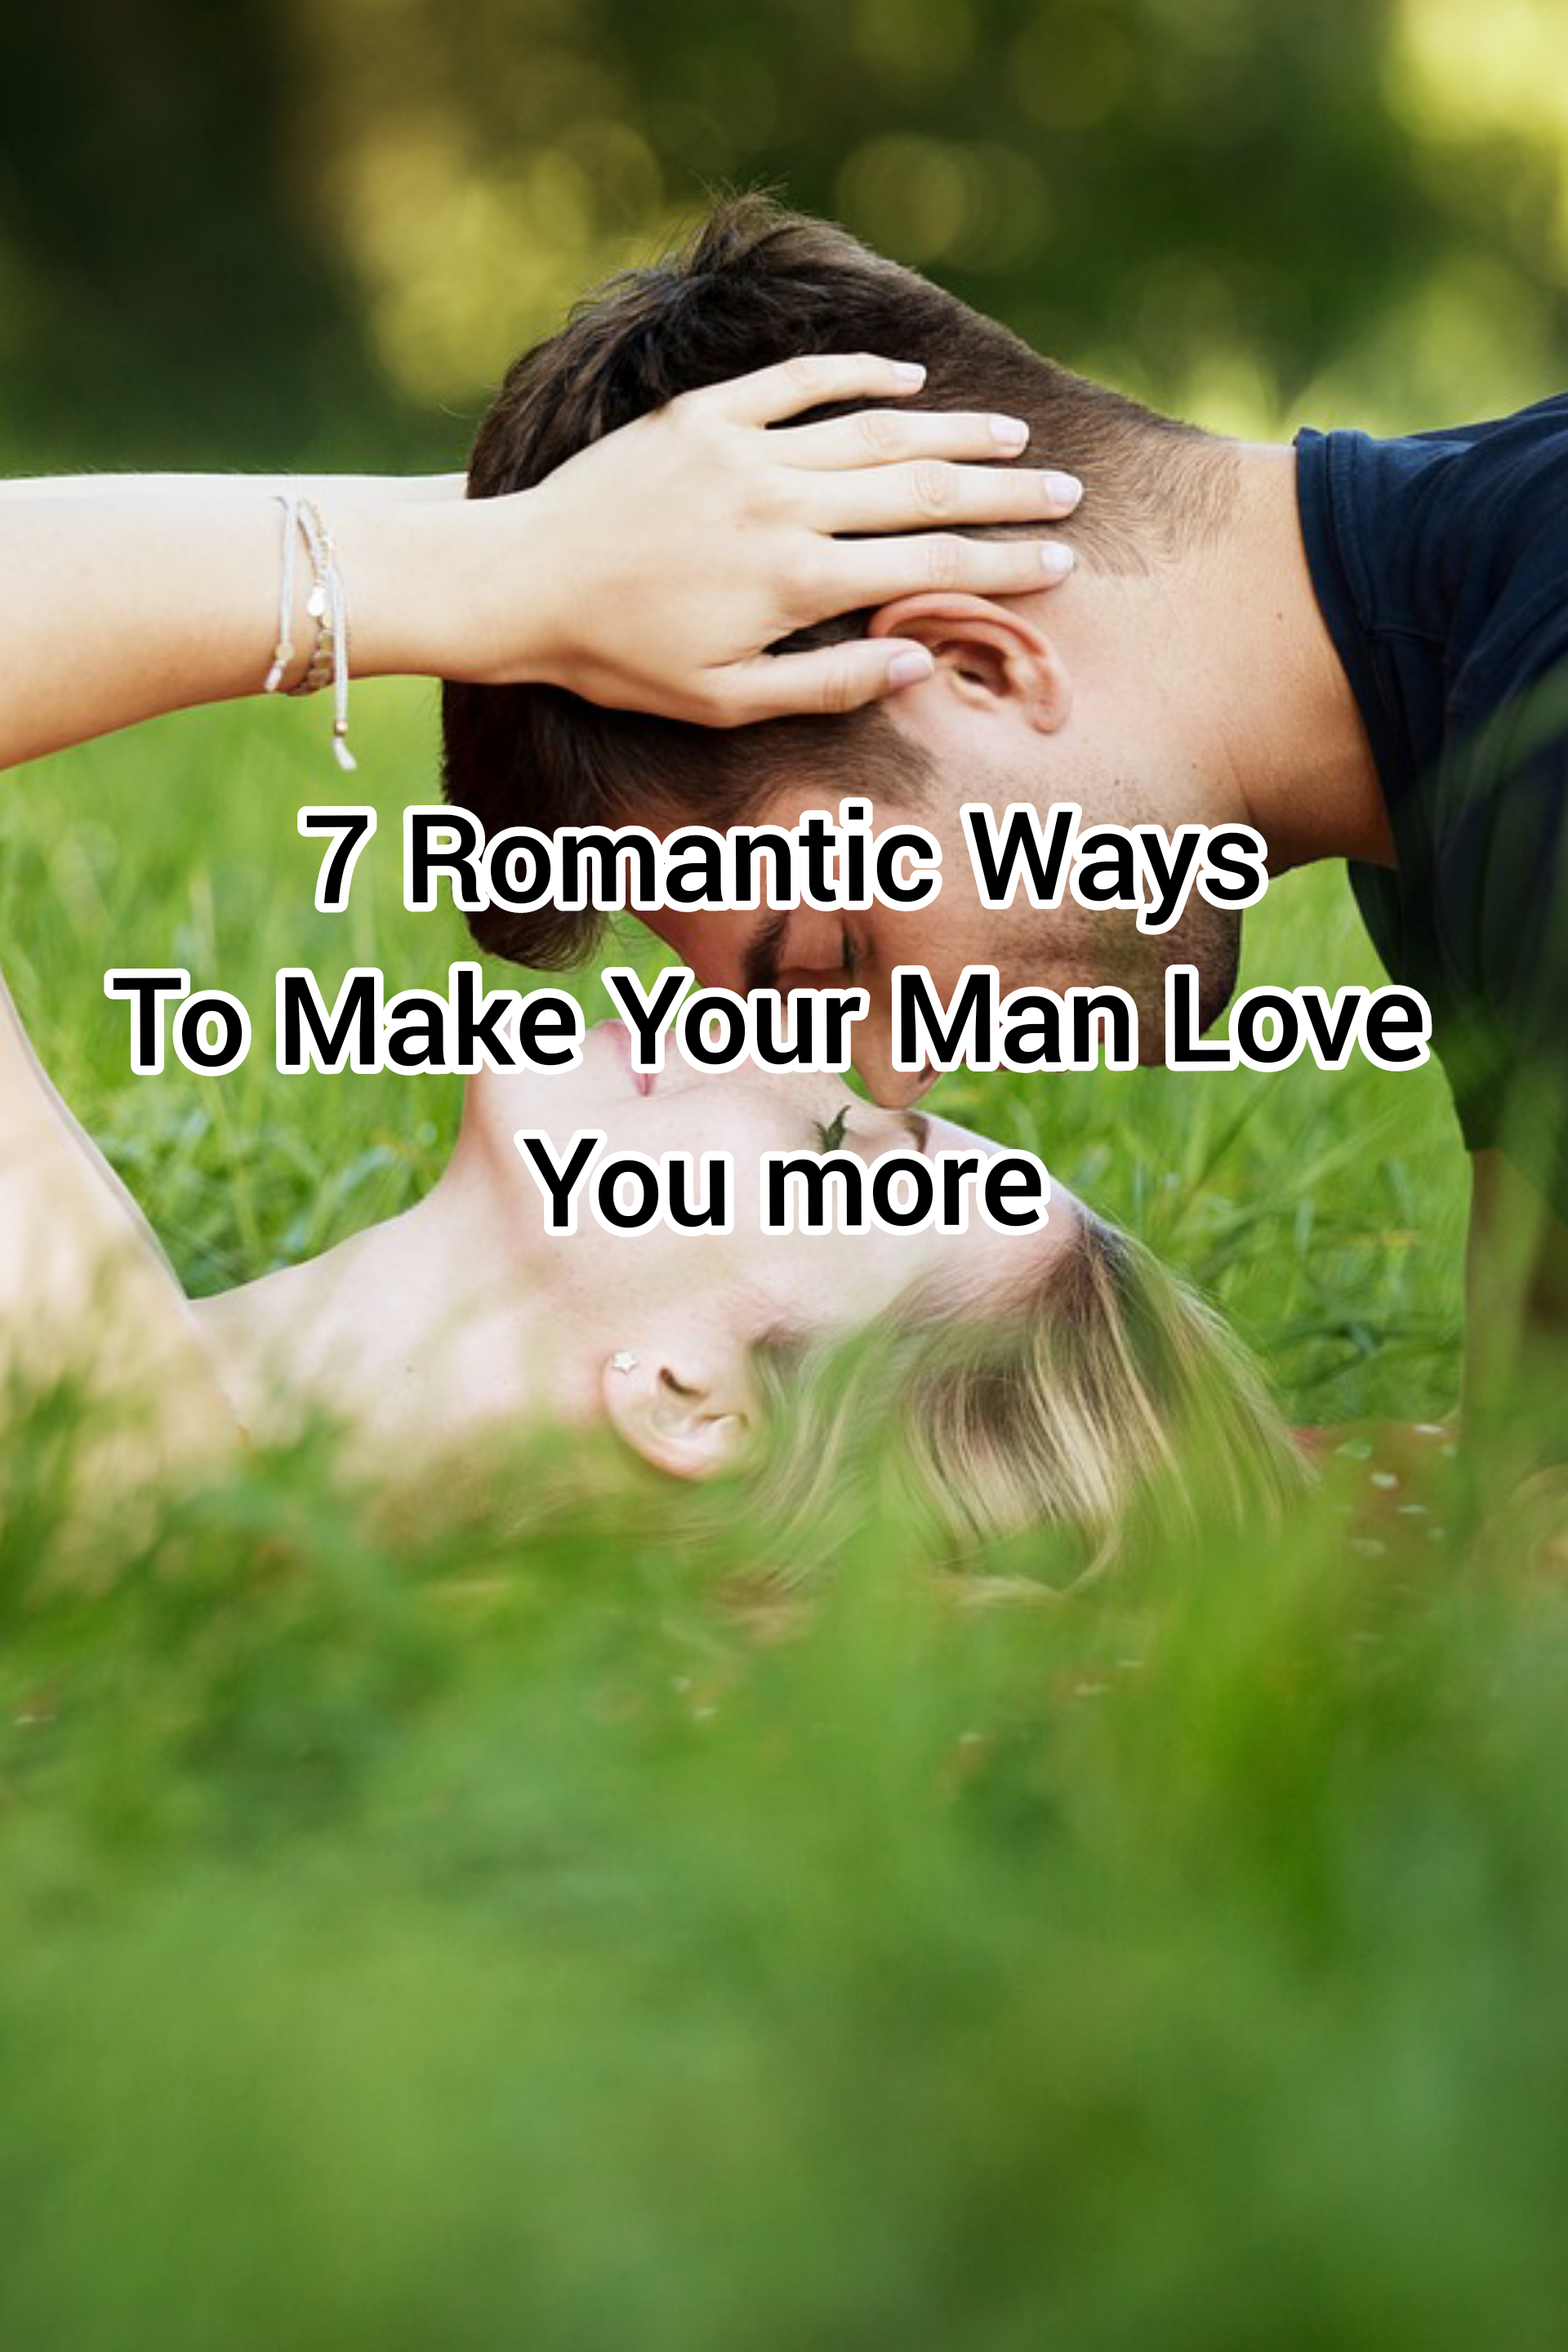 7 Romantic Ways To Make Your Man Love You More